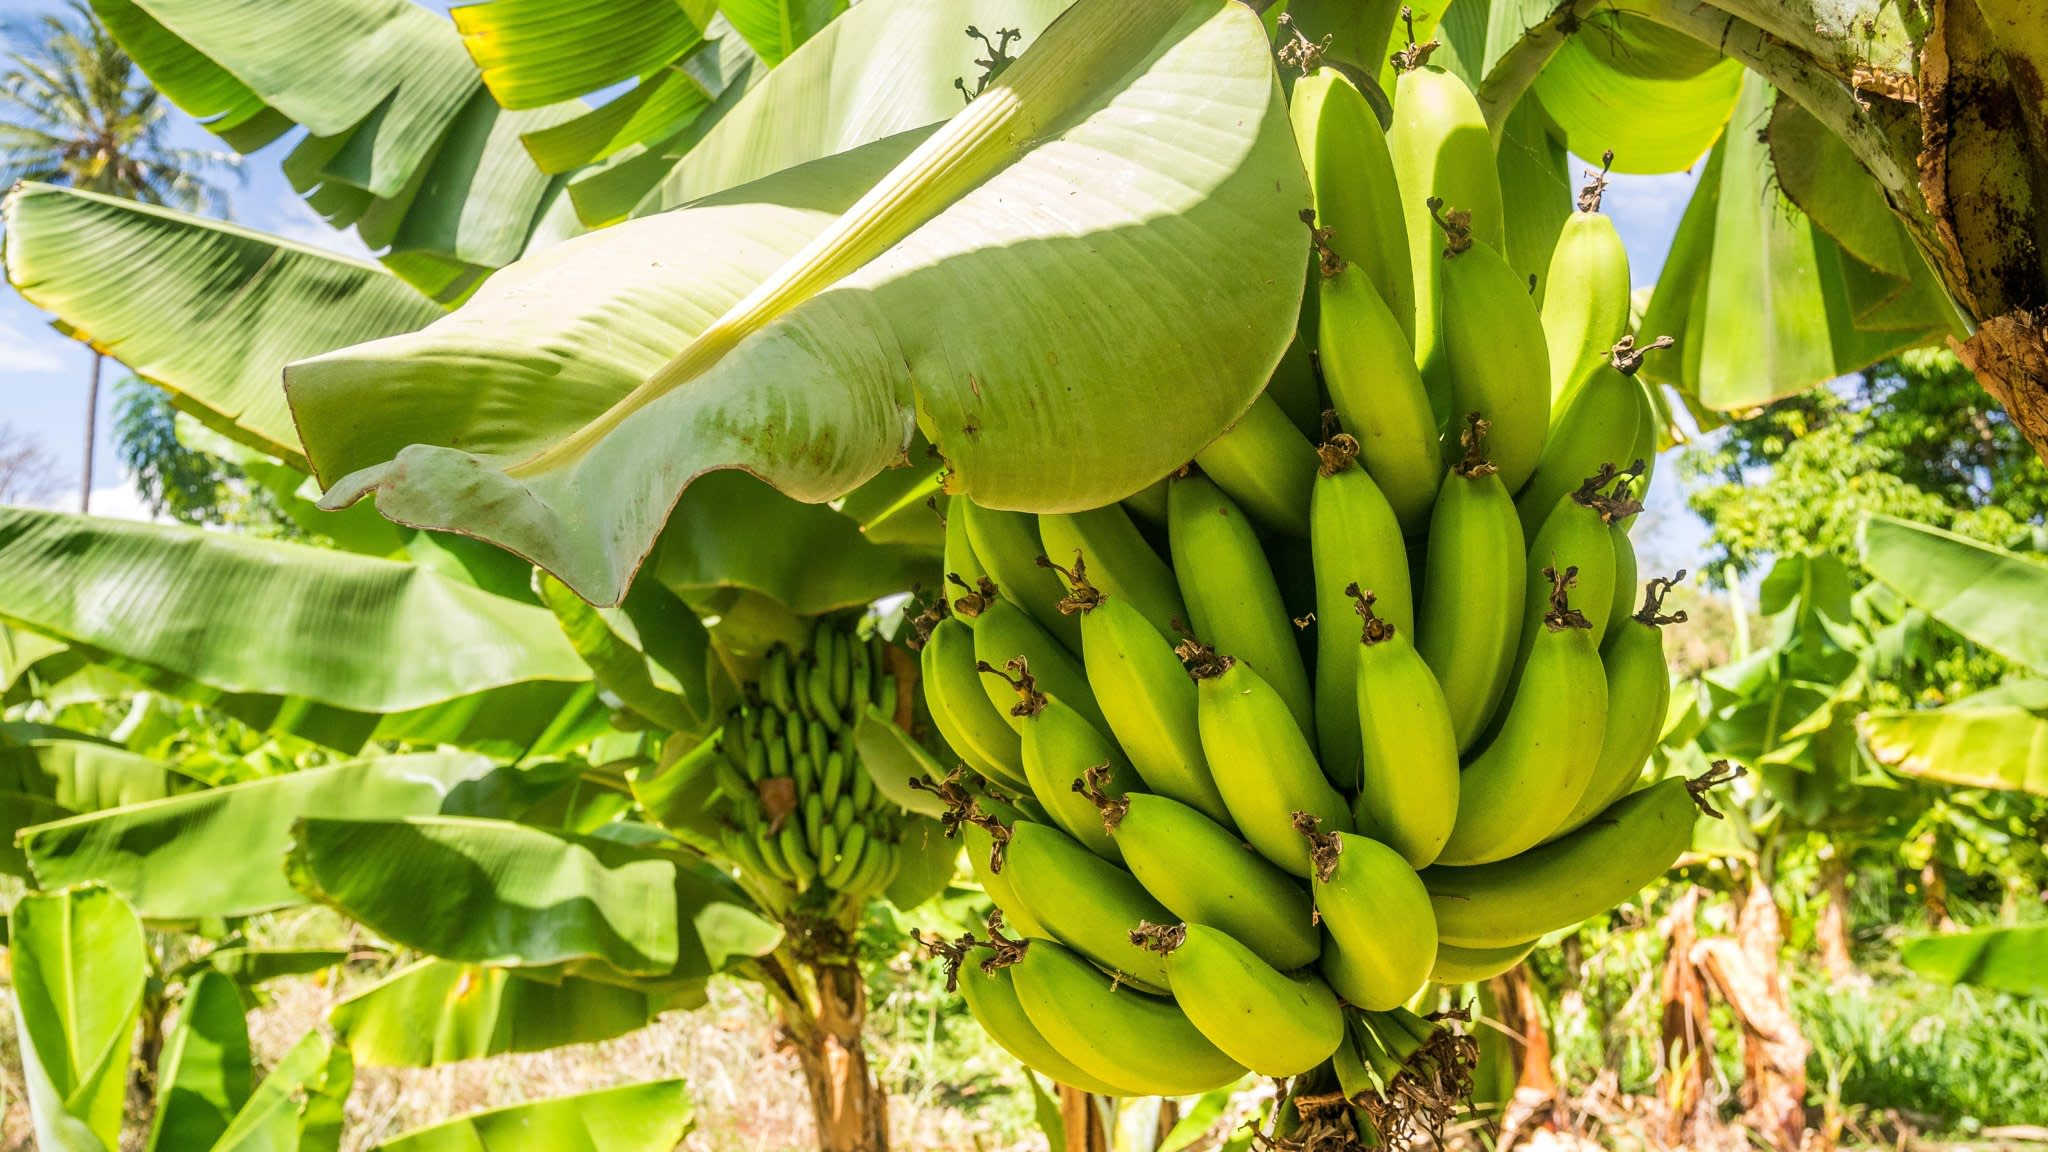 Bananas grown without soil for first time in effort to curb deadly disease | Financial Times